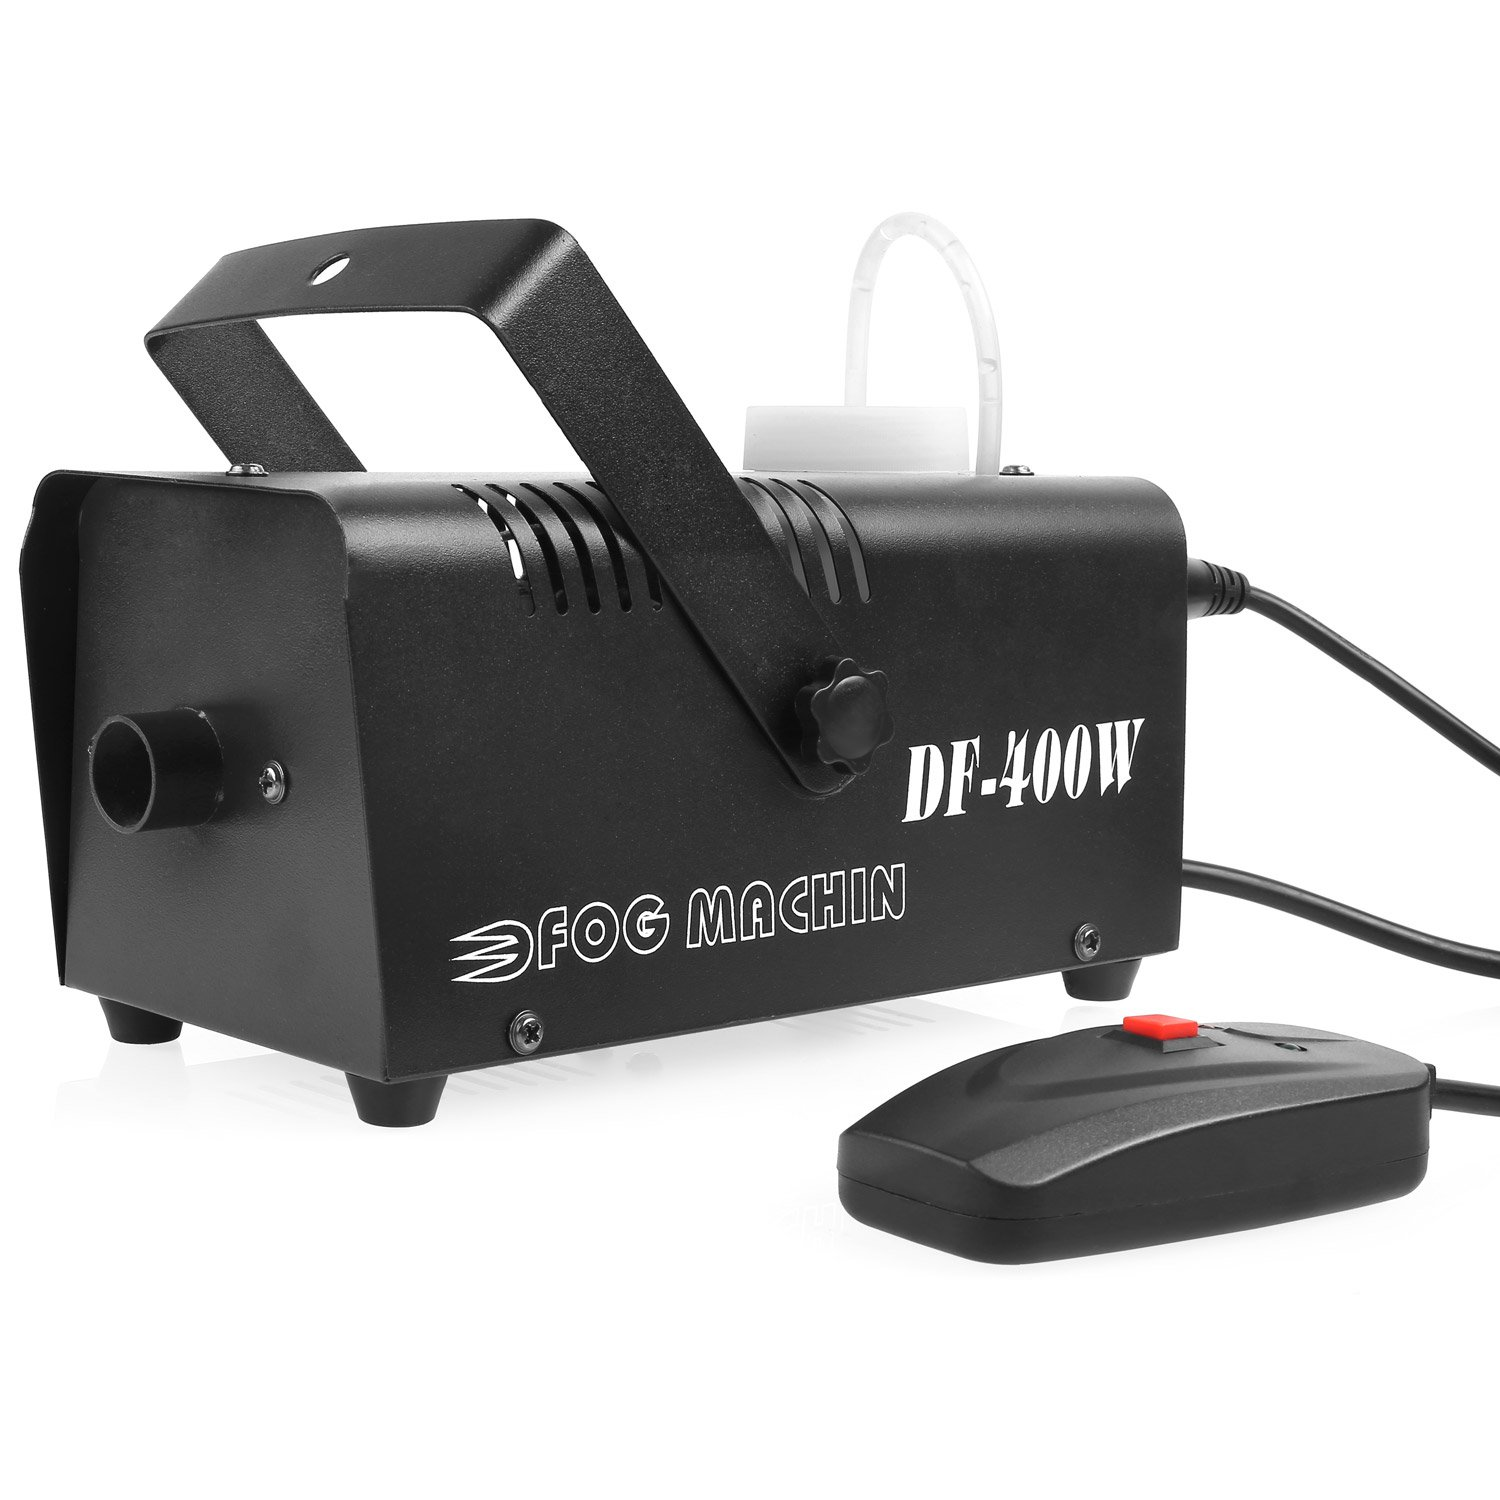 MVPower 400W Portable Christmas and Party Fog Machine with Wired Control for Holidays and Weddings, Impressive Output